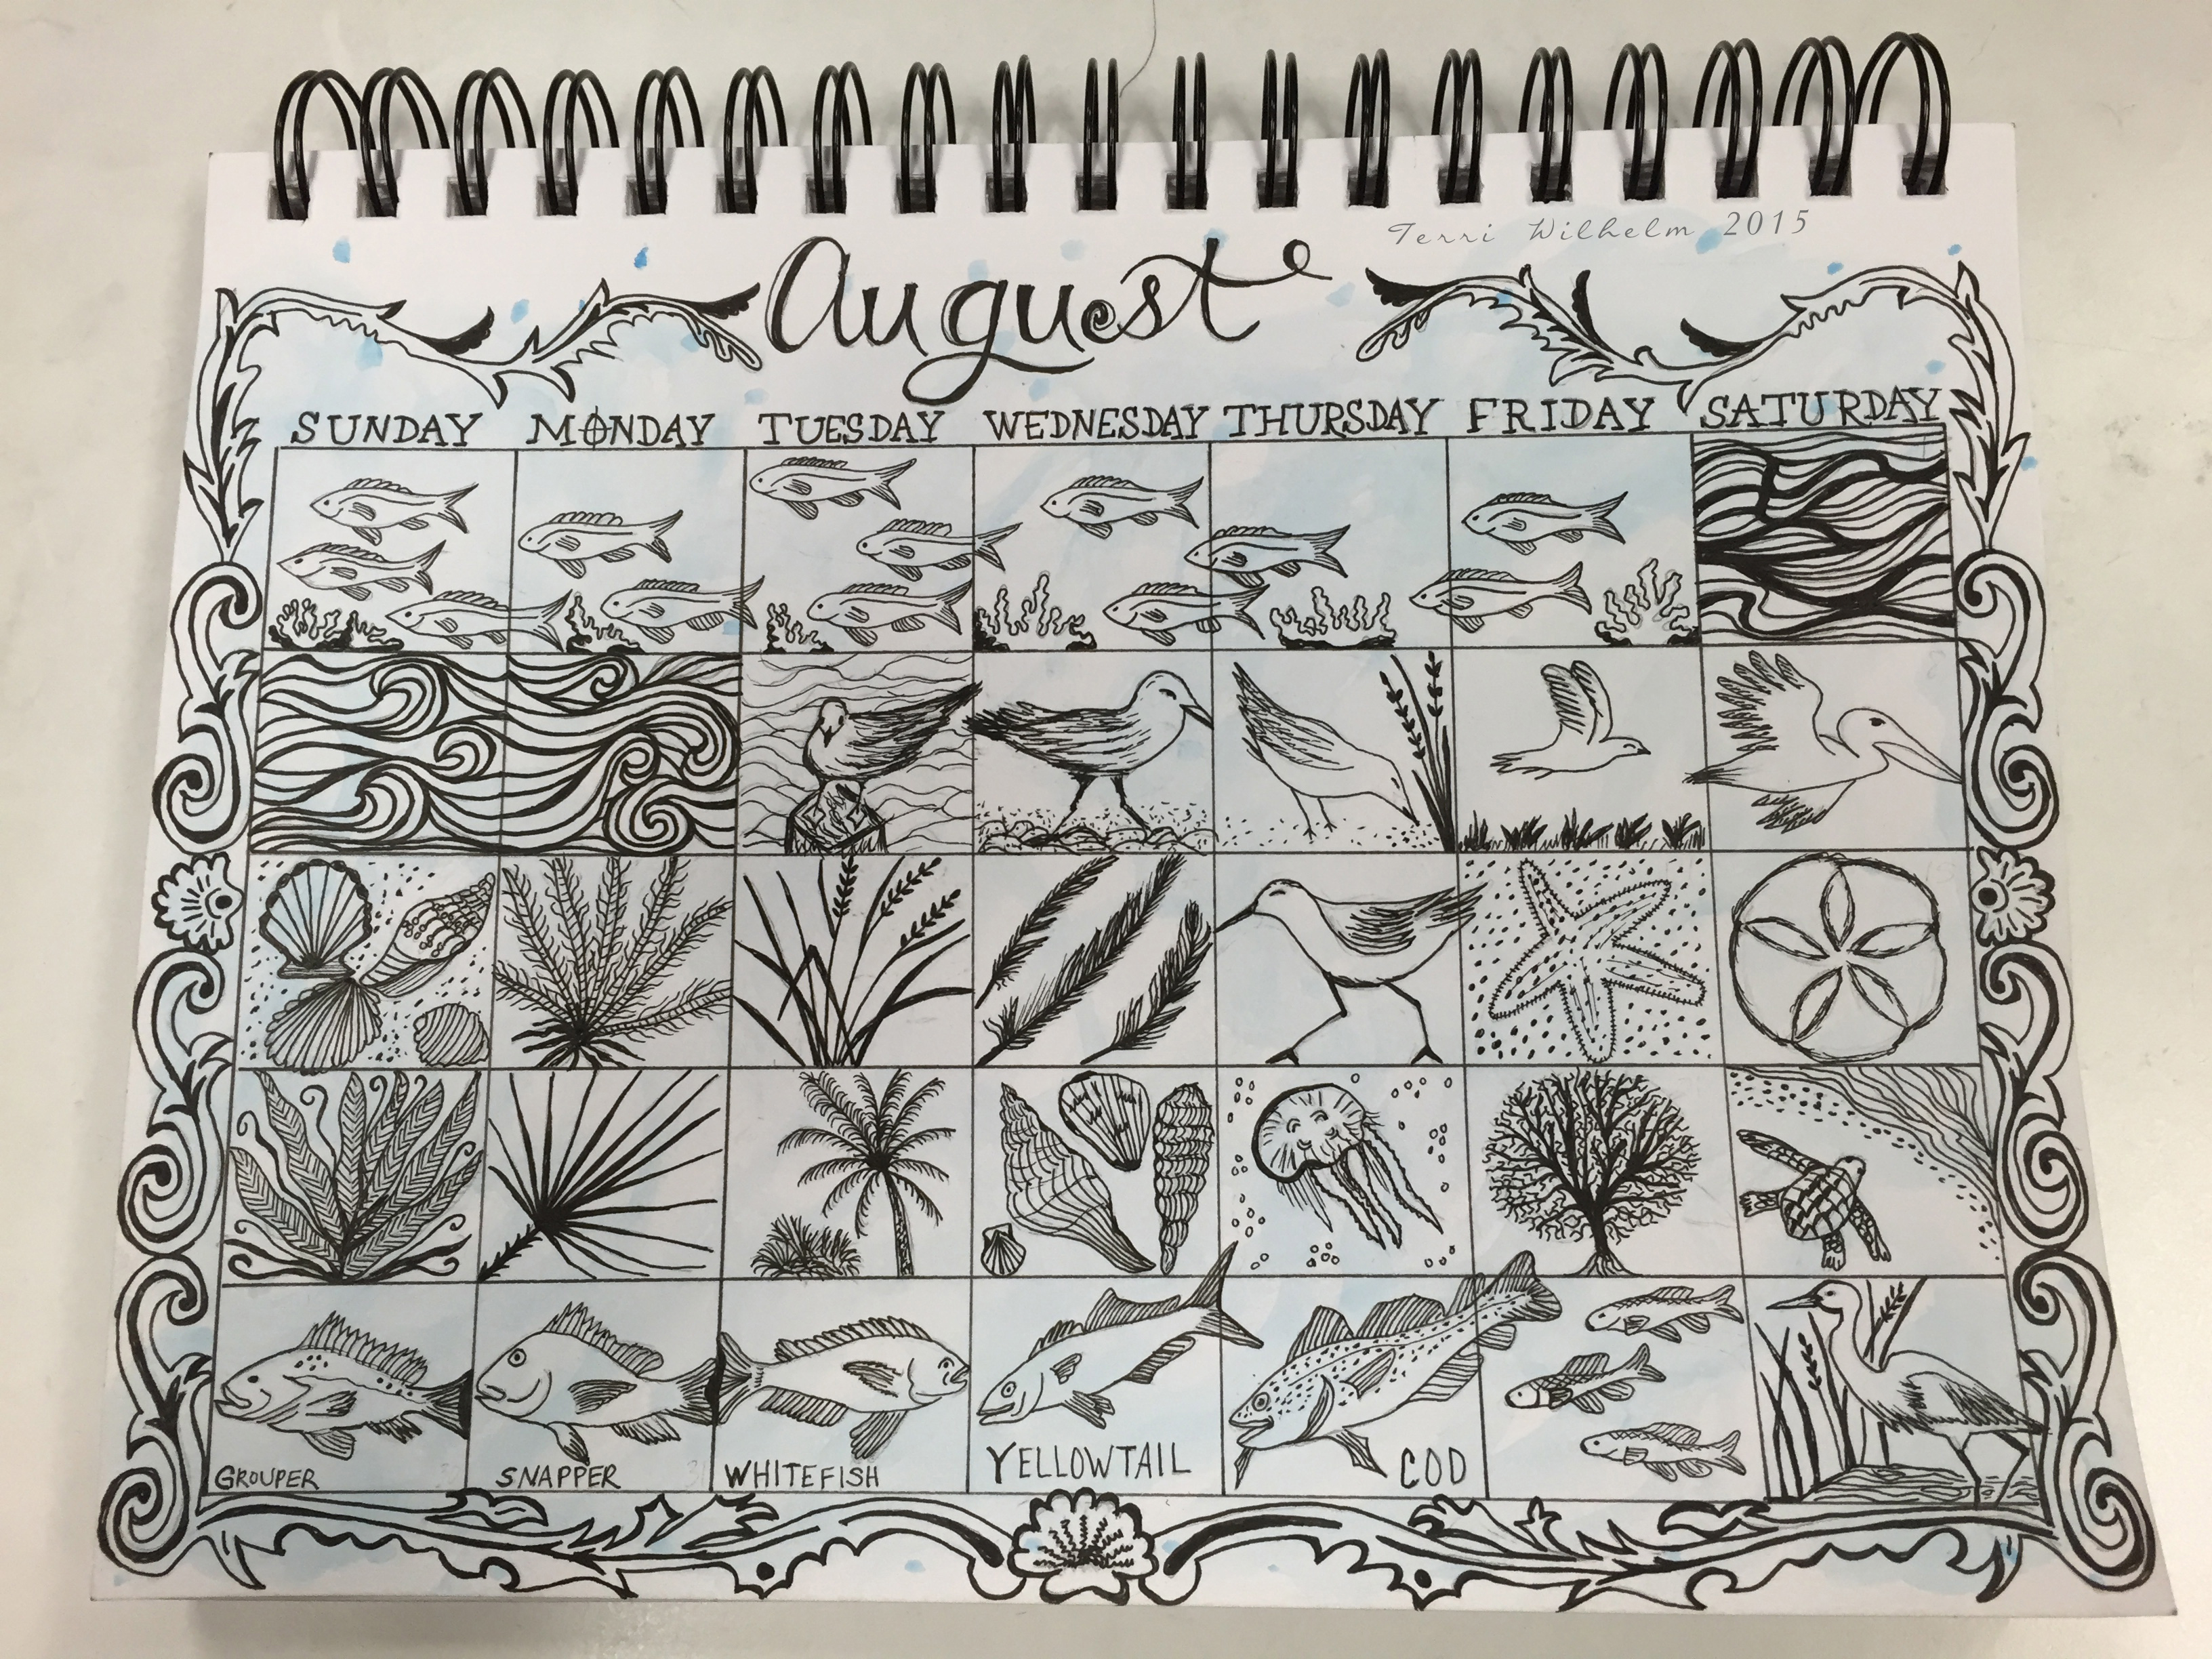 Doodle S: From My Sketchbook: August Doodles